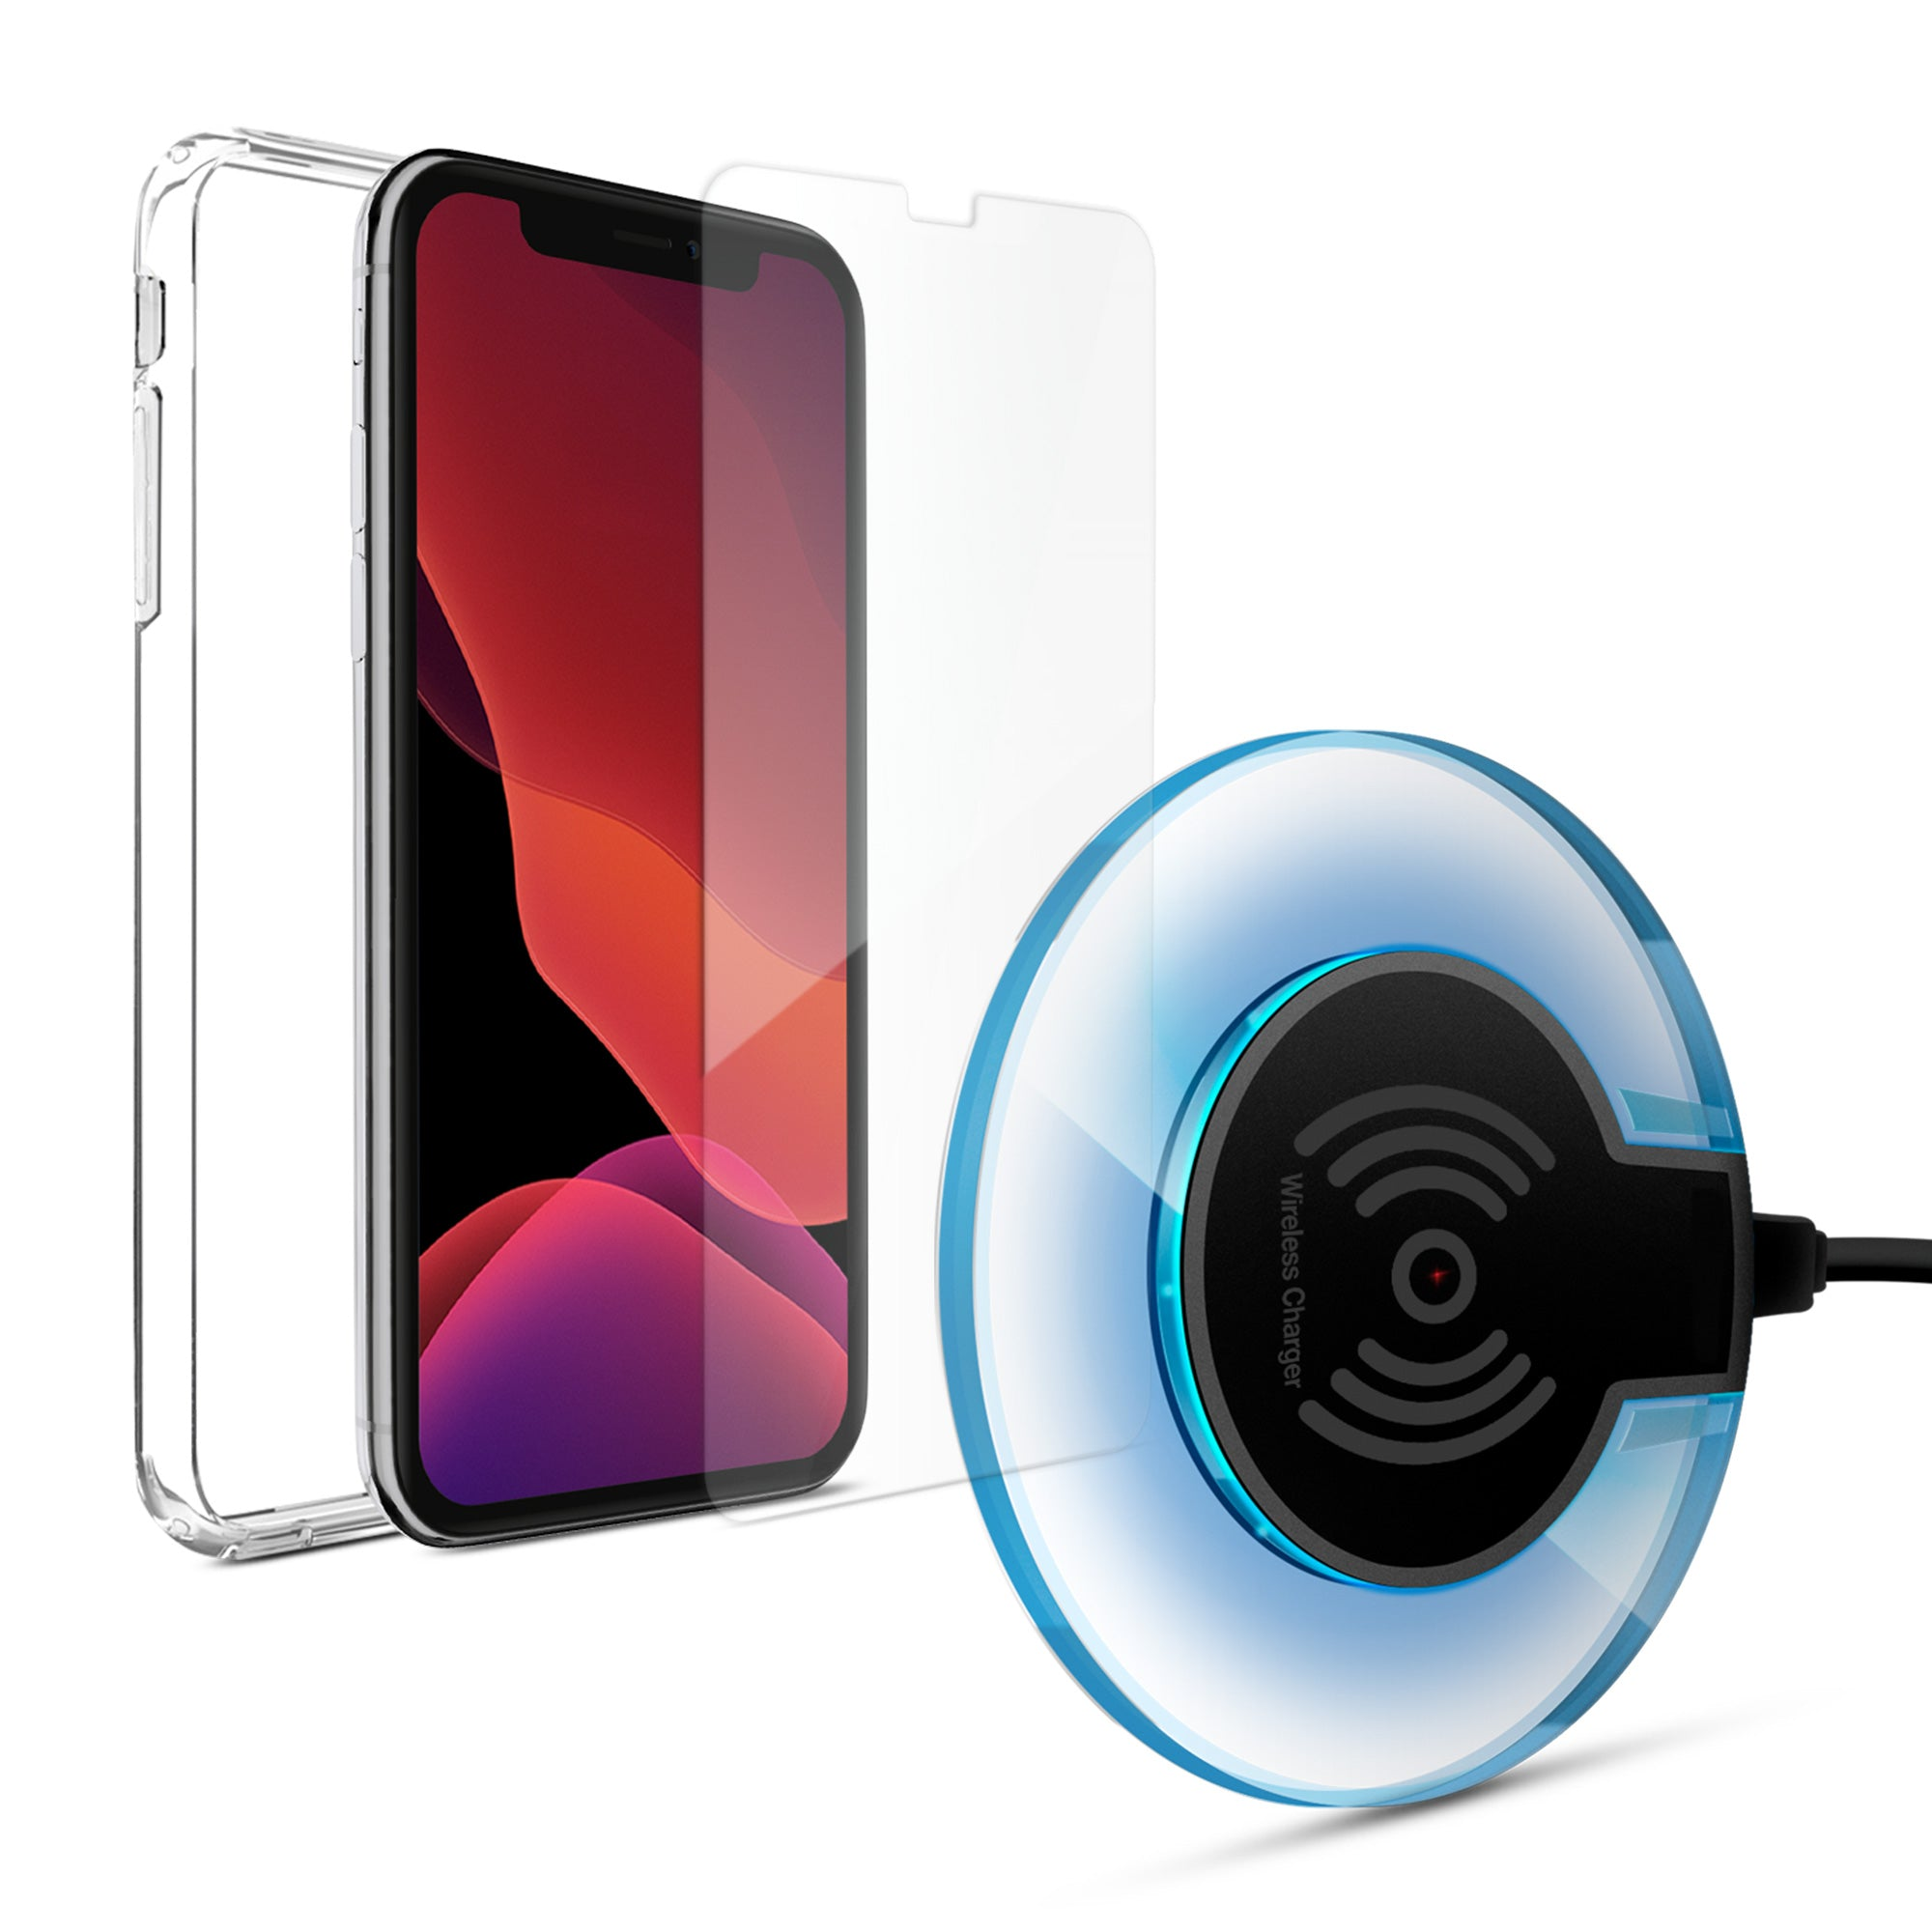 Wireless Starter Kit for iPhone 11 Pro Max